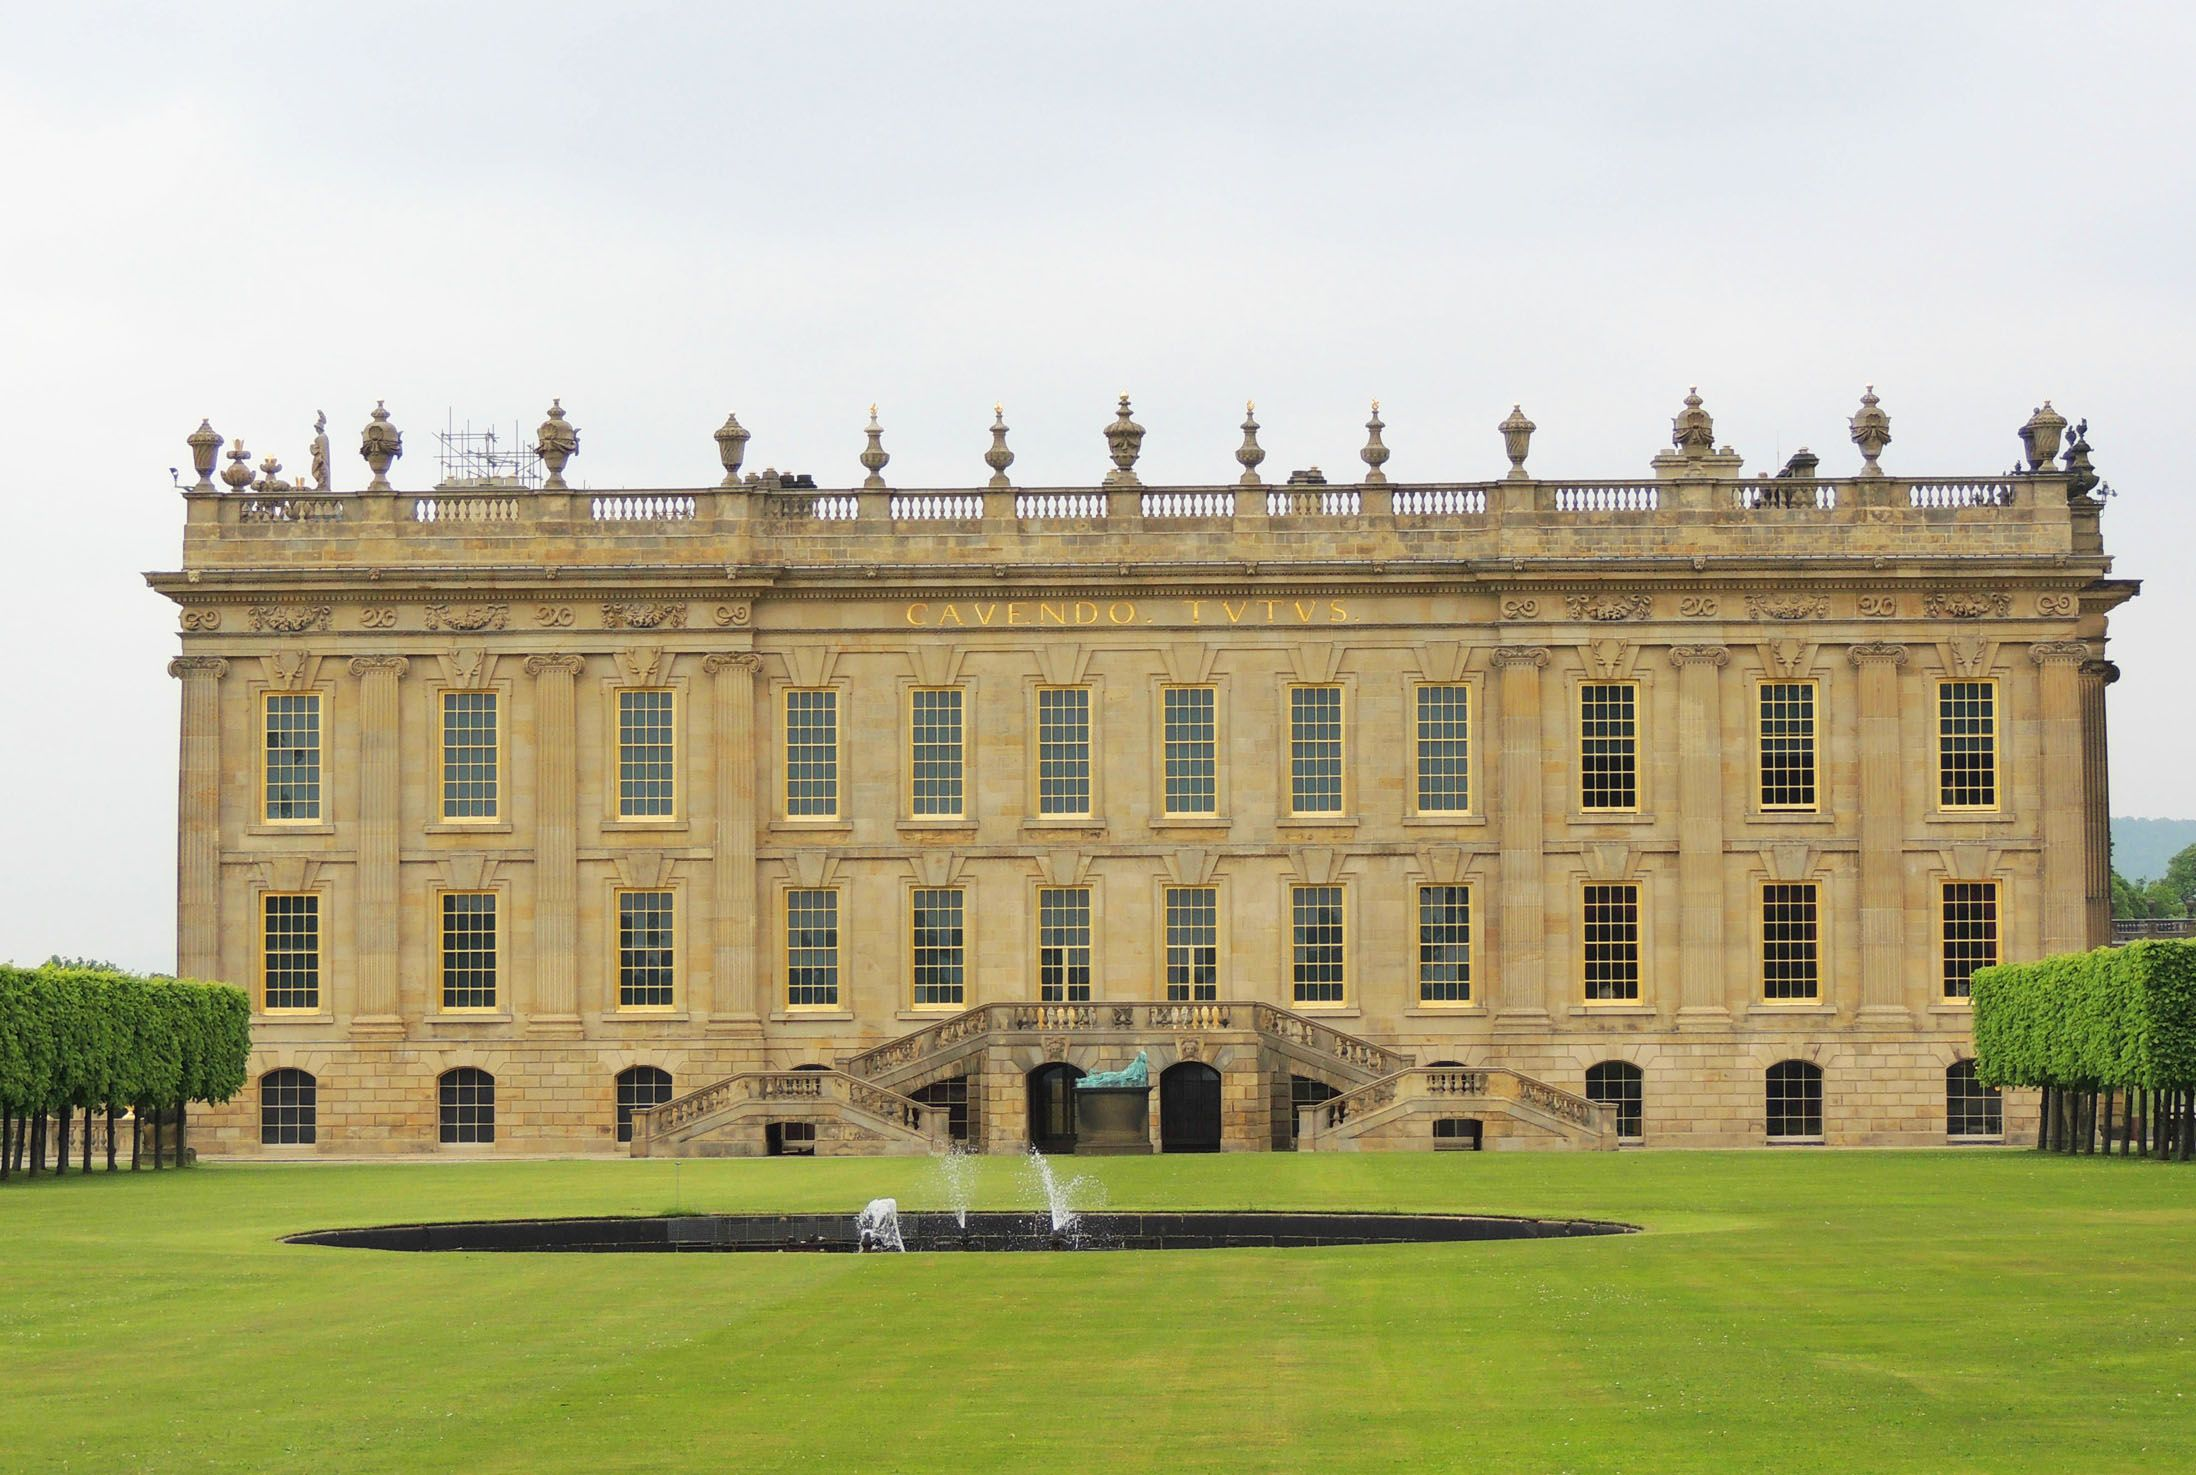 Stunning front elevation to Chatsworth House - Image Copyright Stately Homes & Palaces